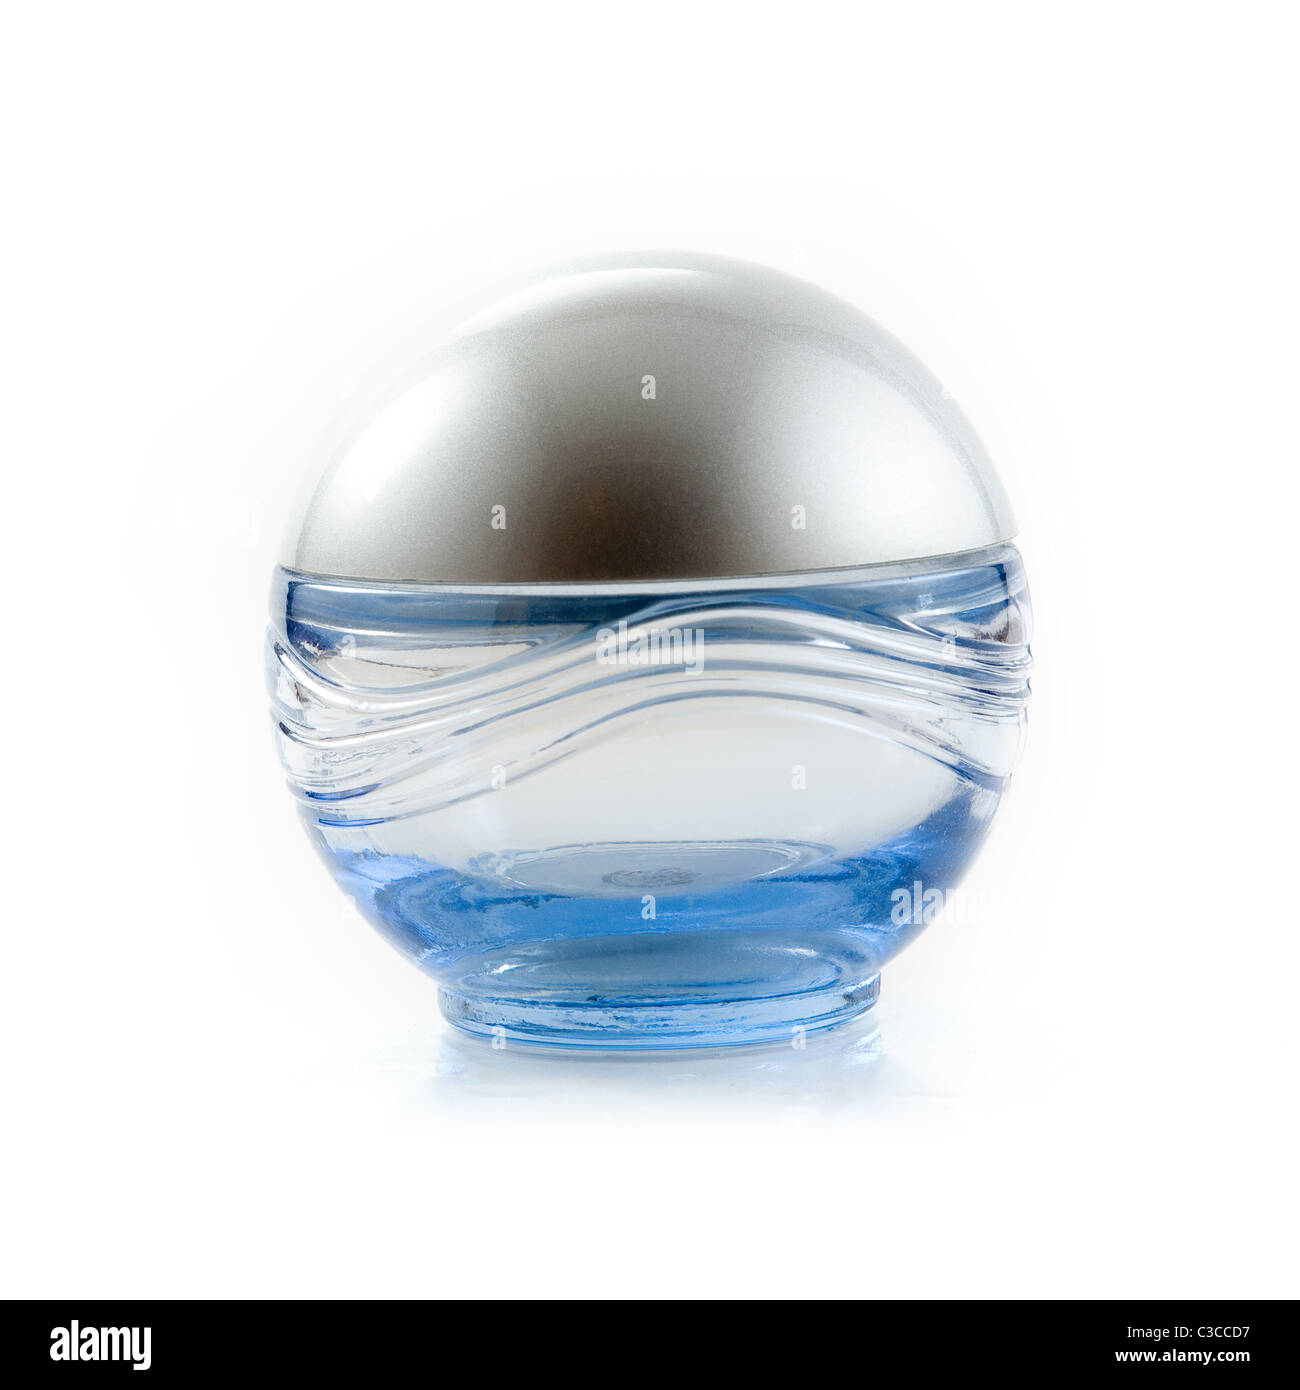 Small decorative perfume bottle, slightly blueish colored - Stock Image